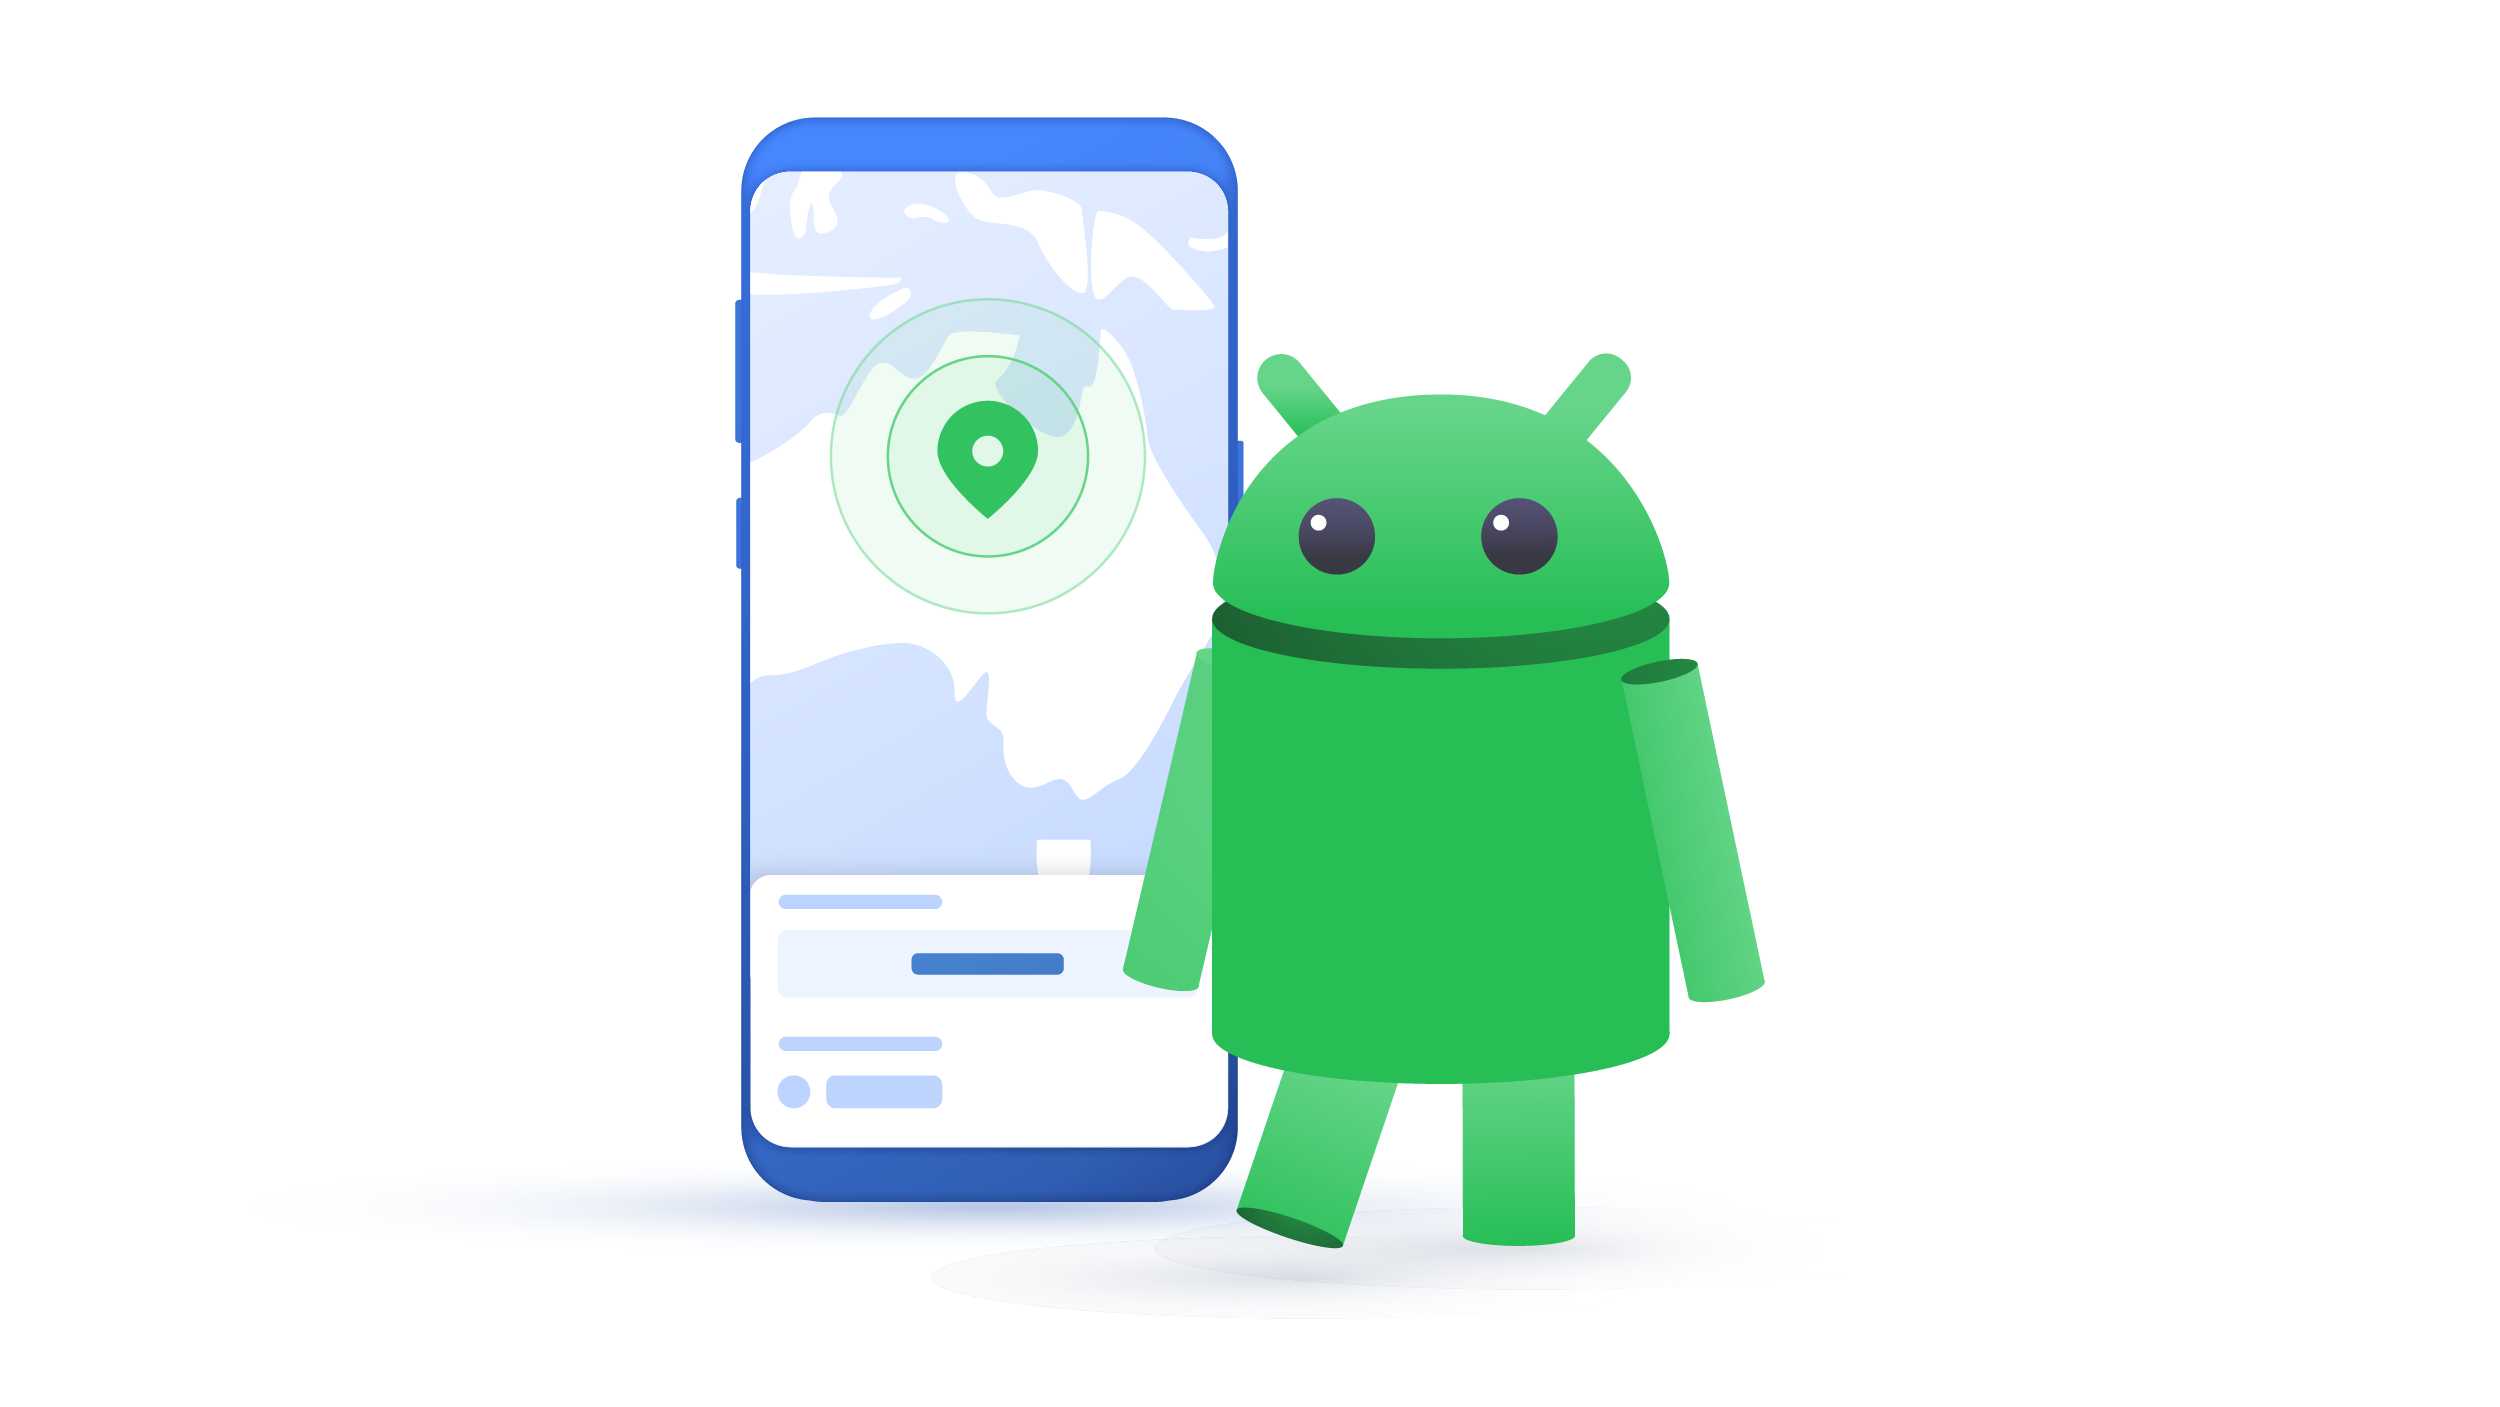 NordVPN for Android: release notes